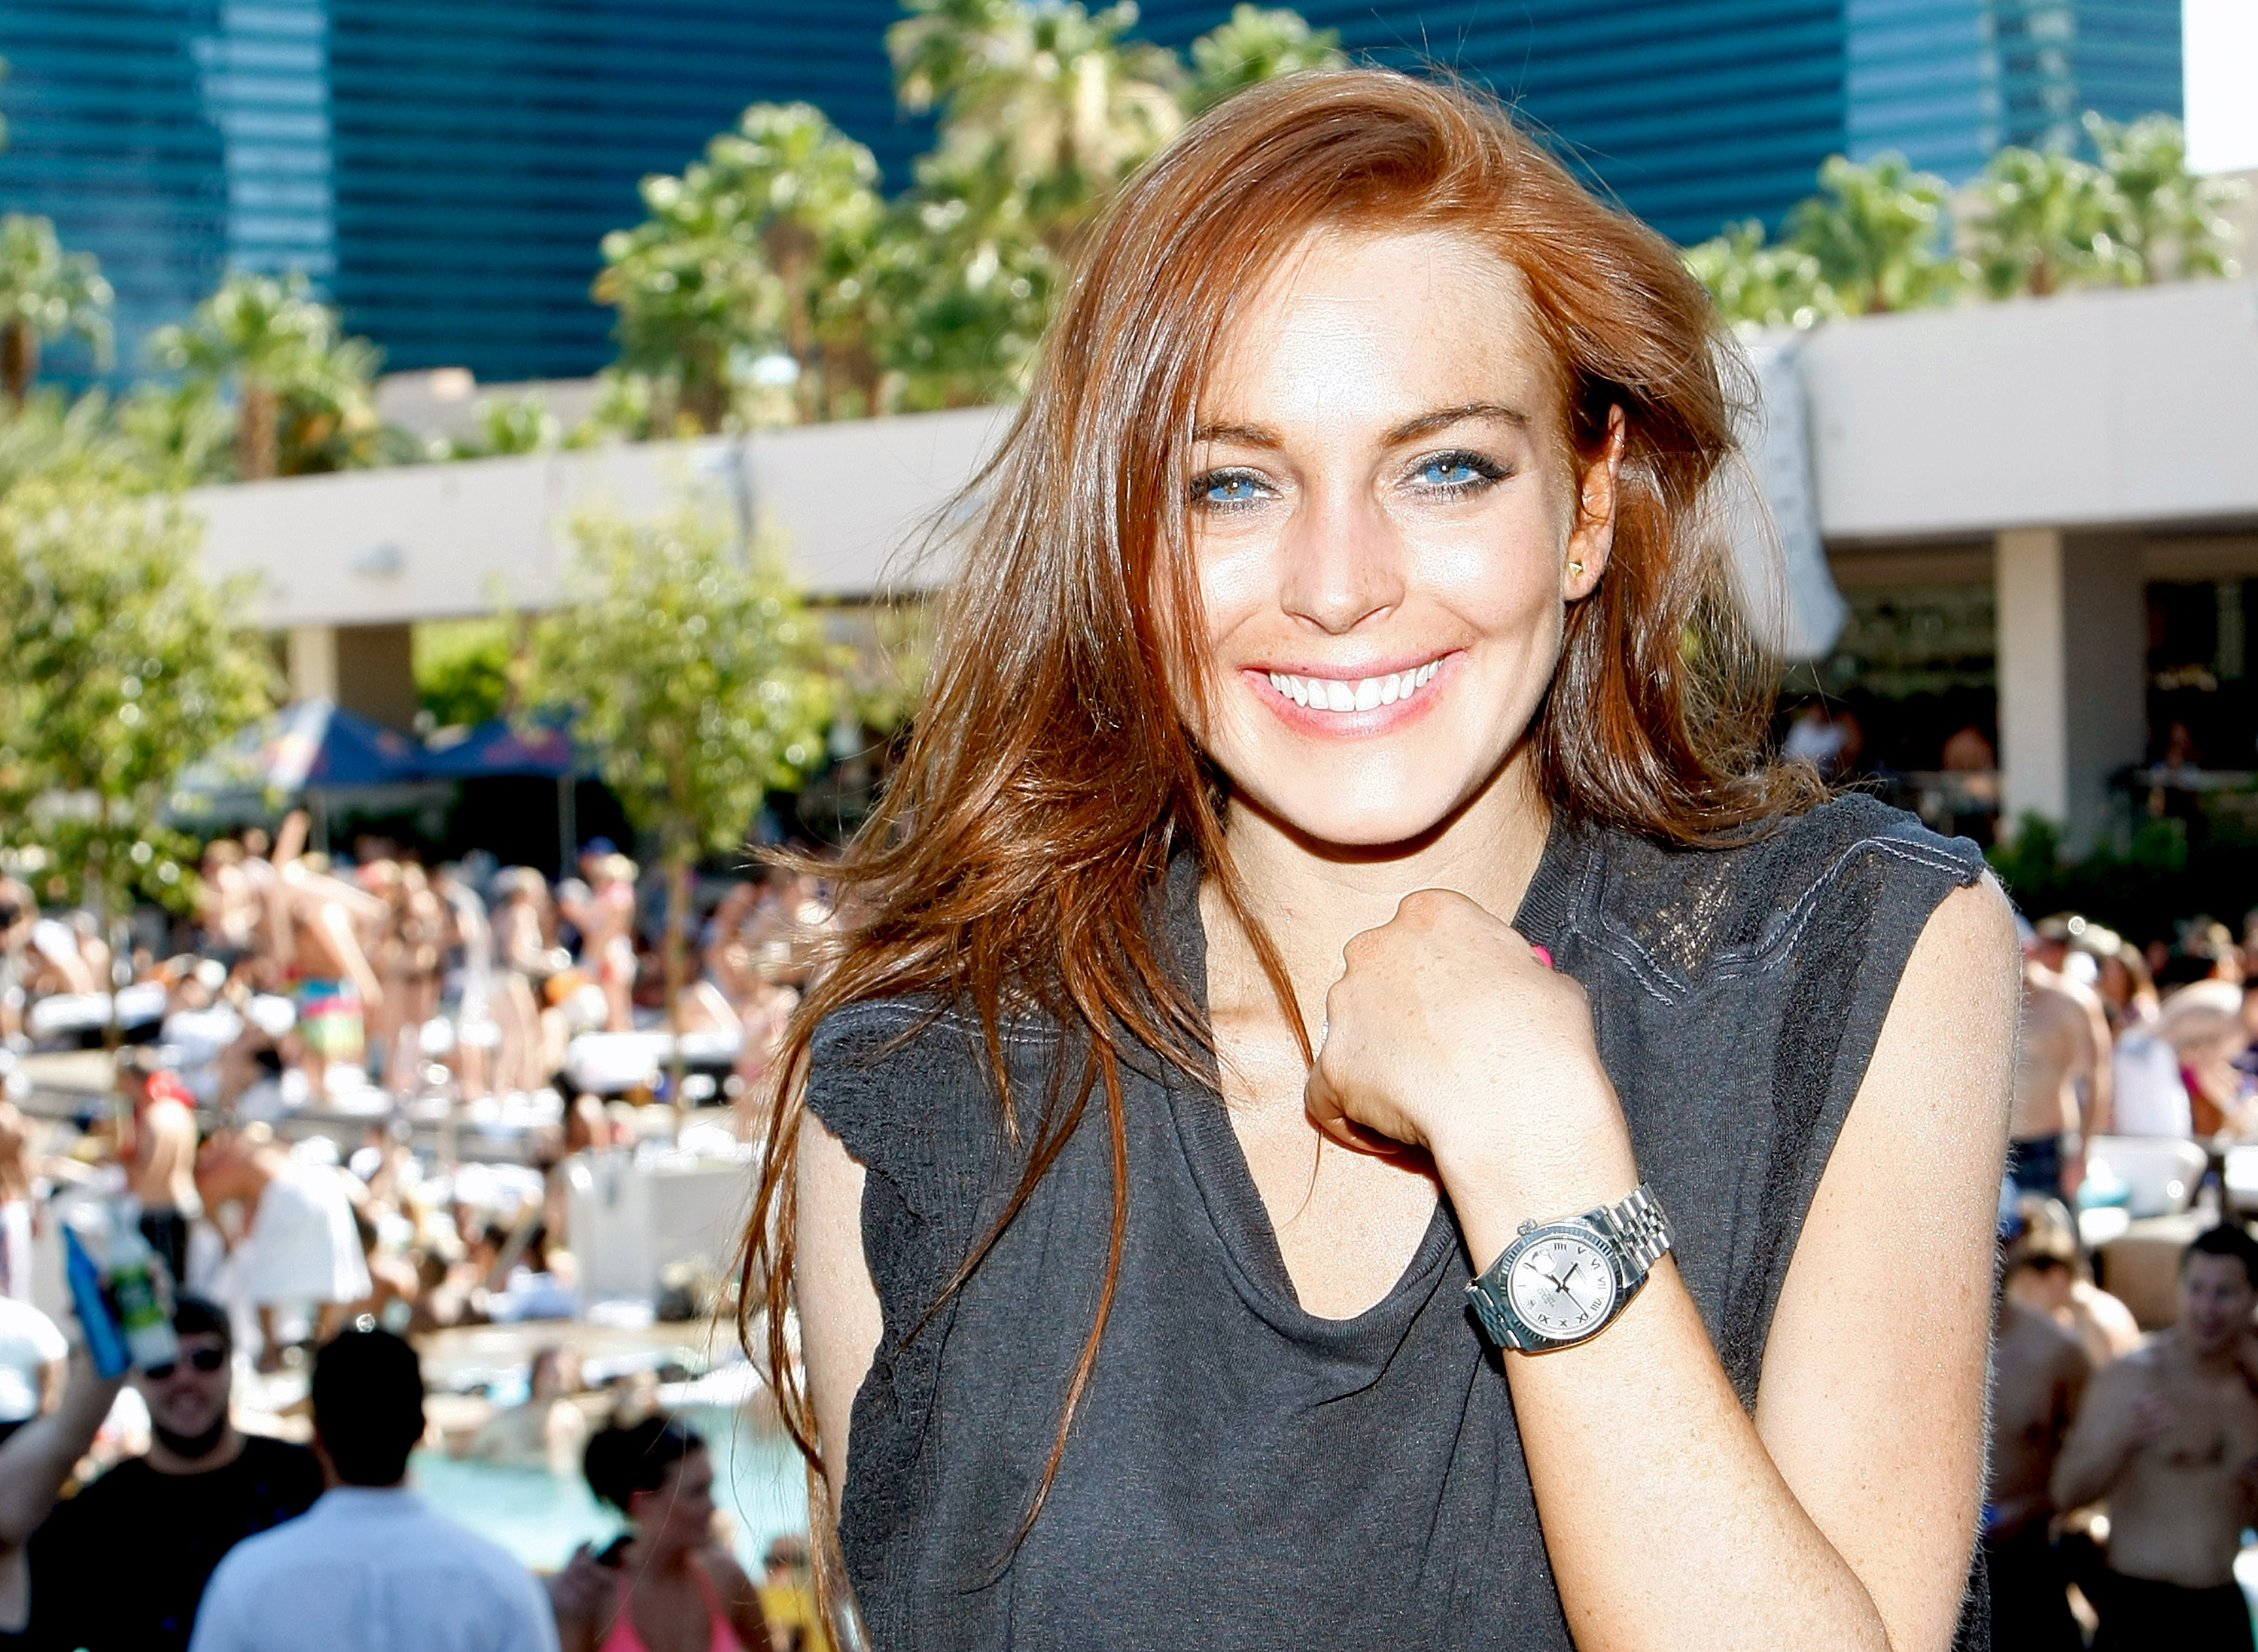 Lindsay Lohan Celebrates Her Birthday At Wet Republic At MGM Grand